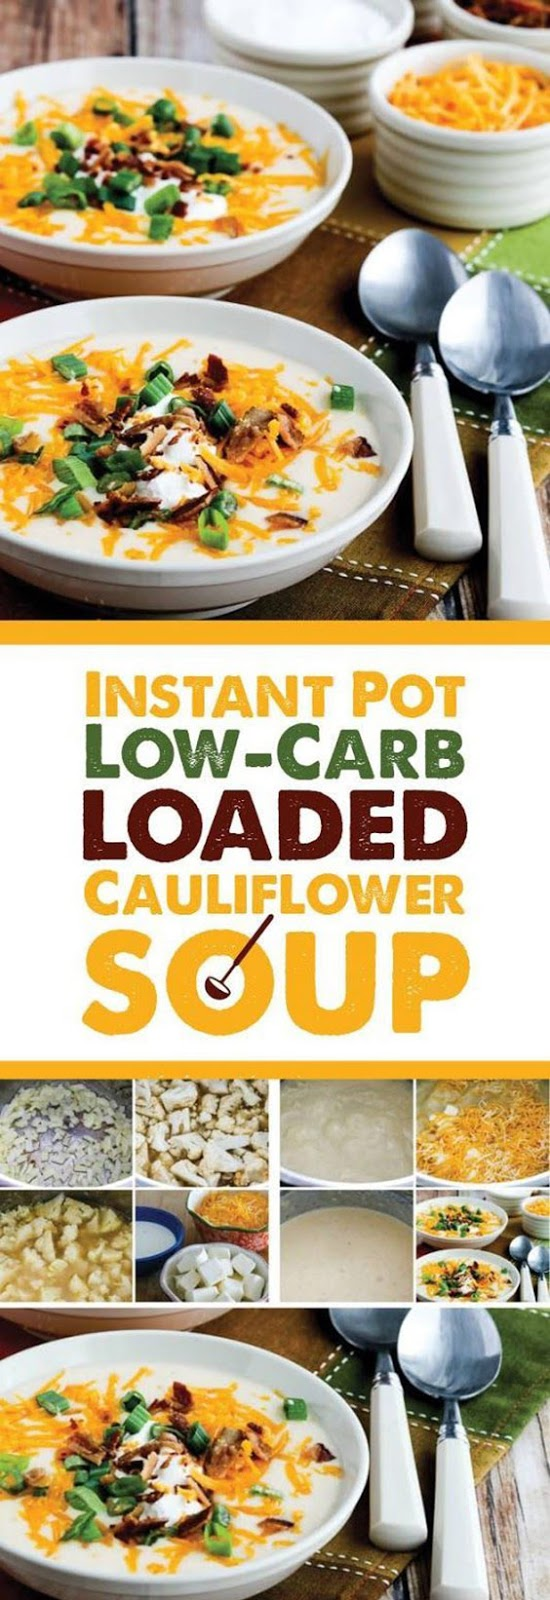 Instant Pot Low-Carb Loaded Cauliflower